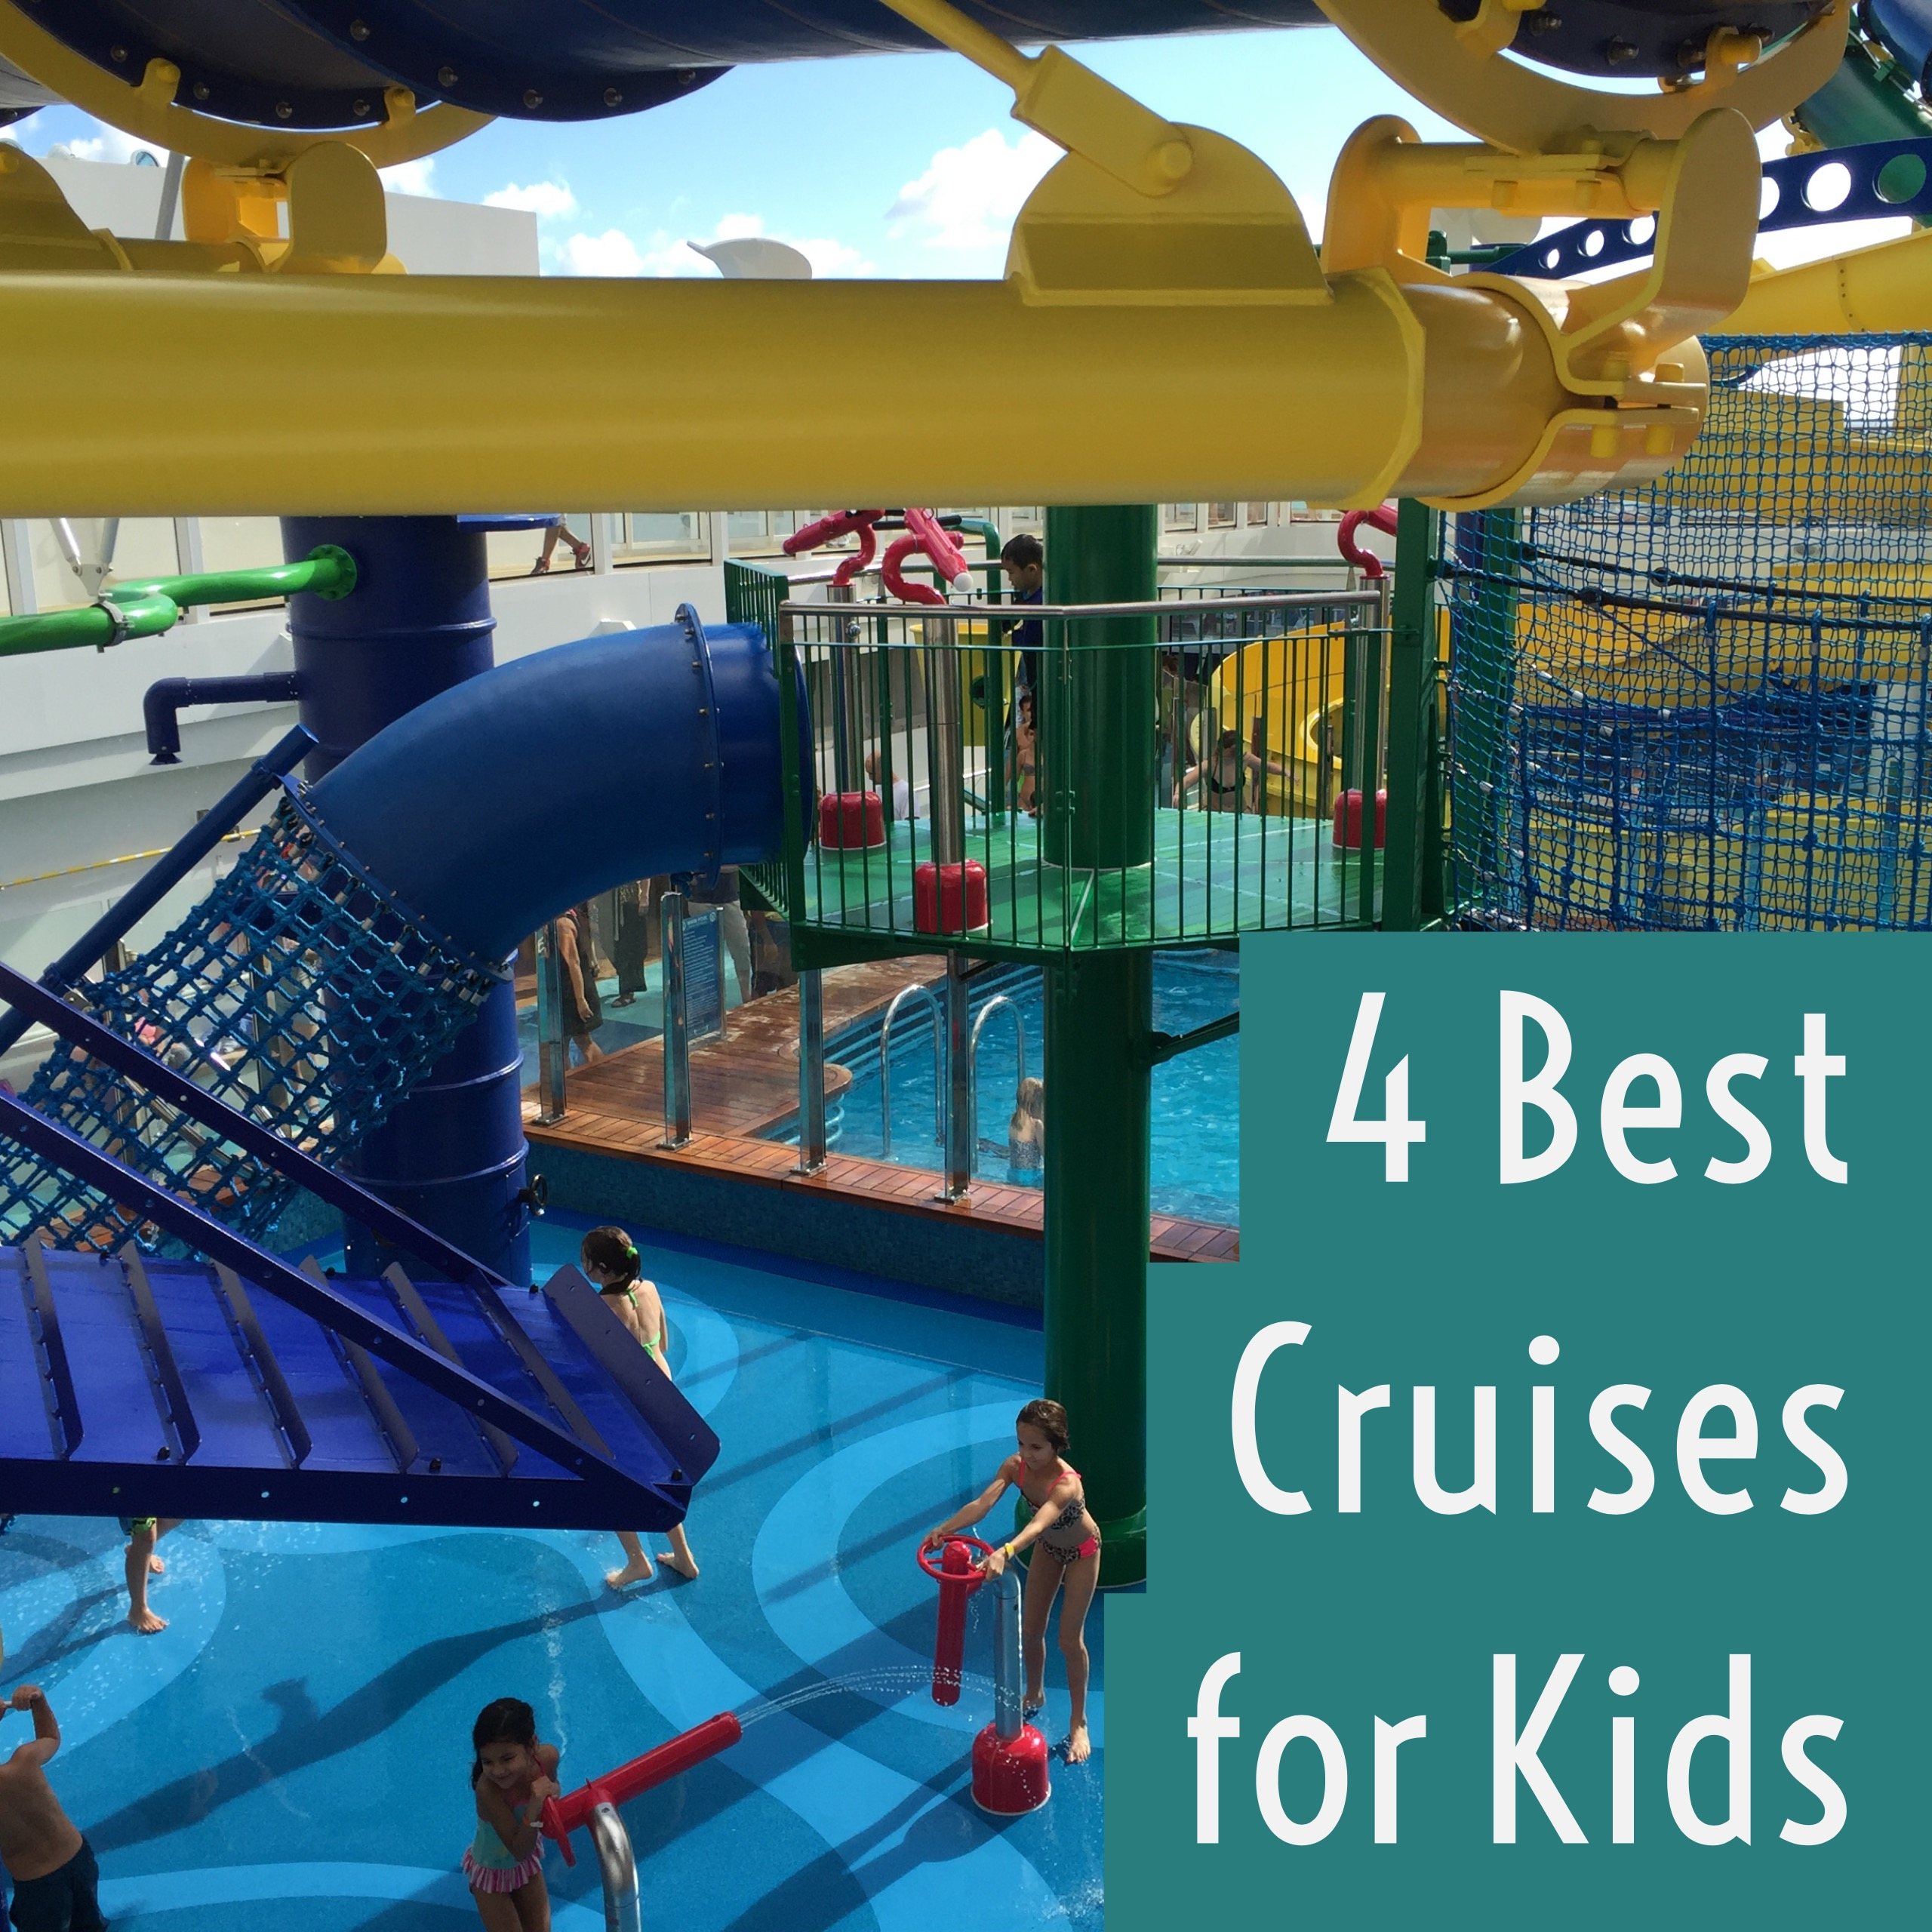 Best Cruises For Kids Cruise Lines That Kids Will Love TTOT - Best cruise ship for kids